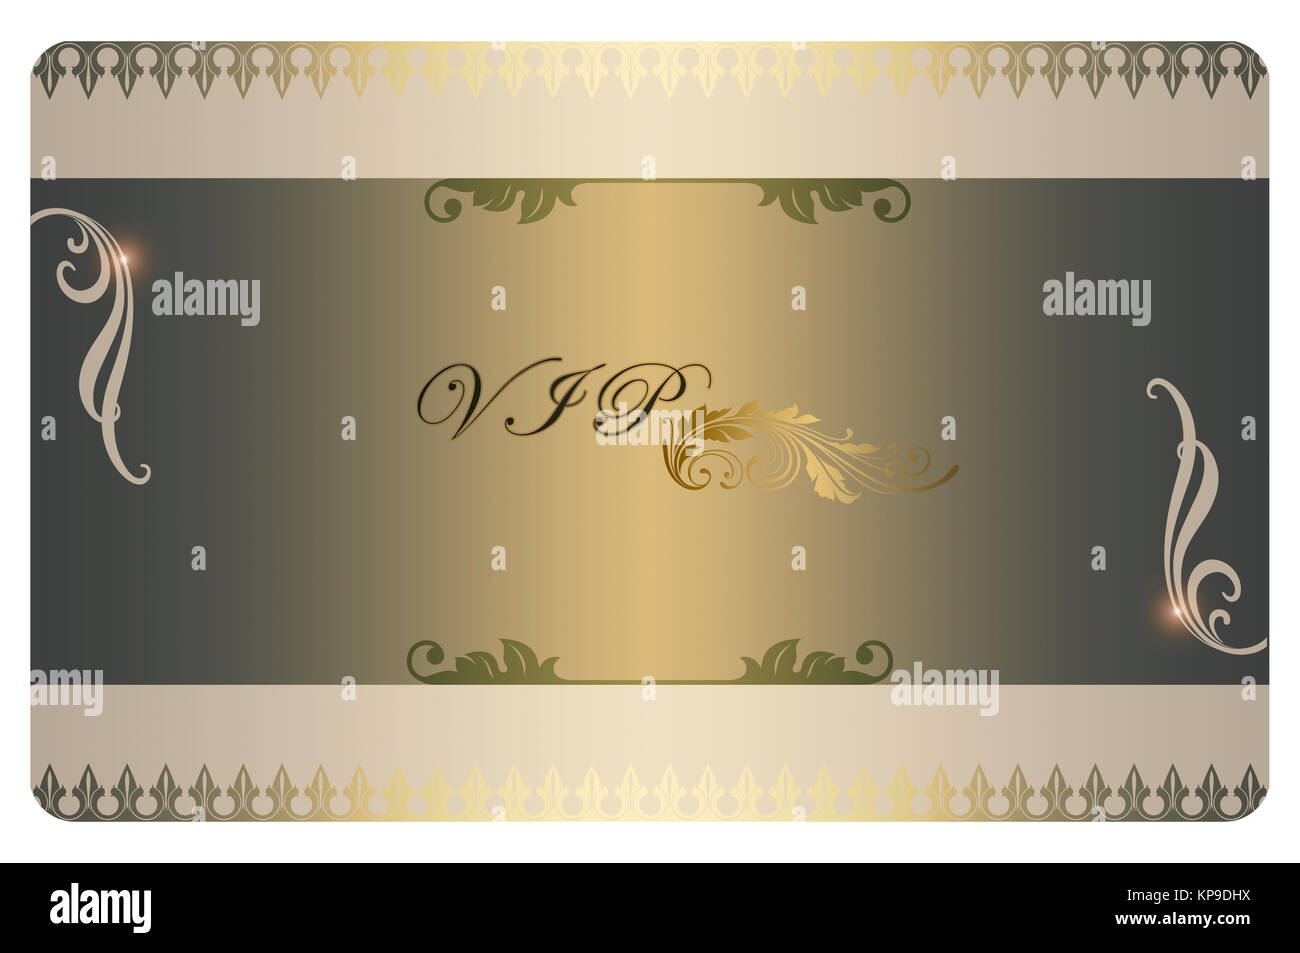 Vip card design stock photos vip card design stock images alamy template with decorative patterns for the design of business card vip business card background maxwellsz